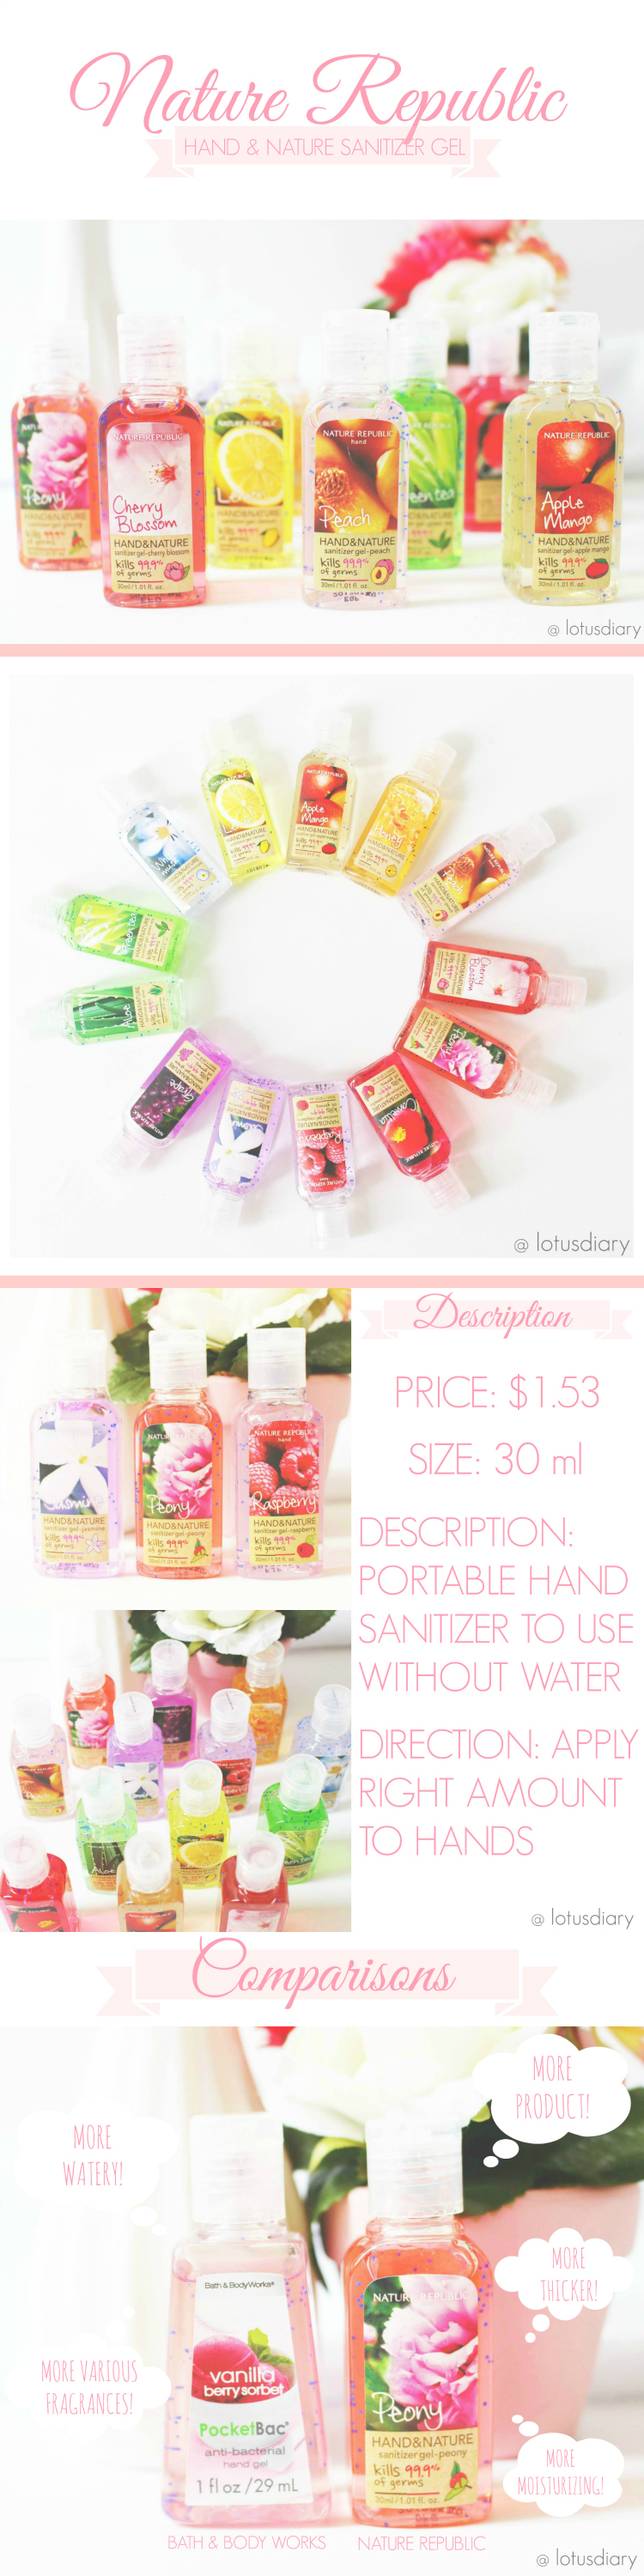 Review Nature Republic Hand Sanitizer Beauty Review